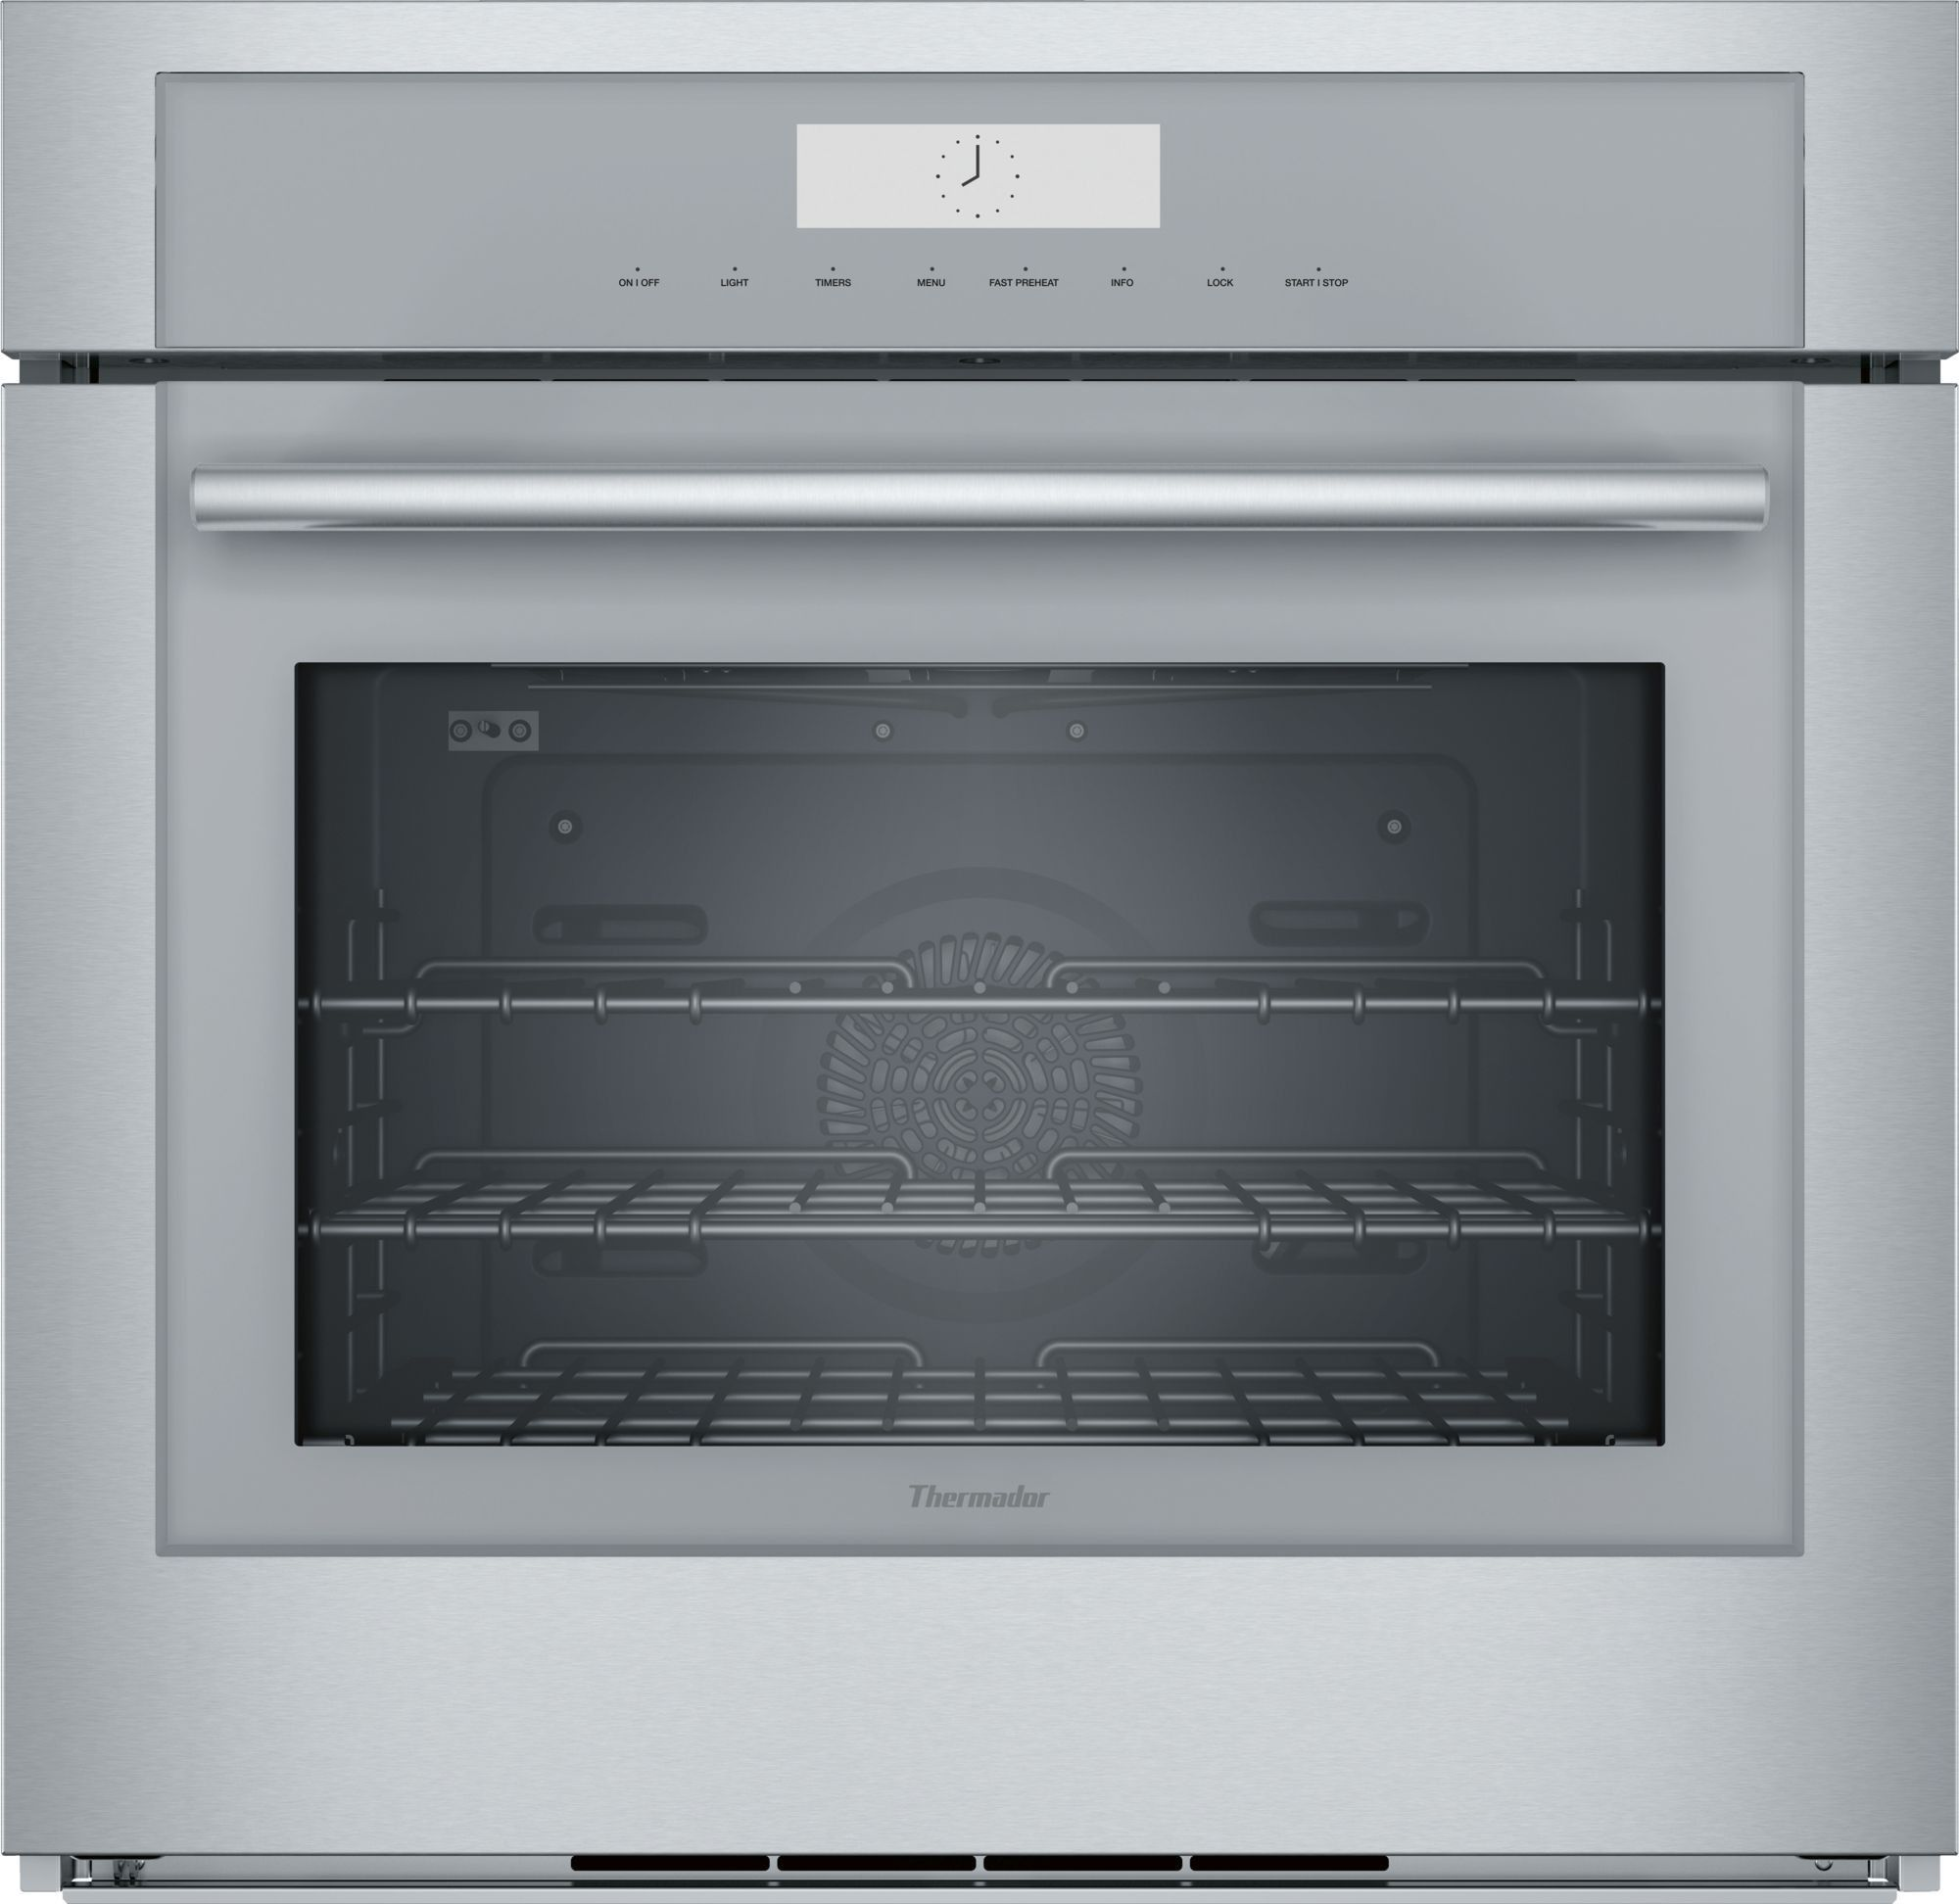 Thermador Masterpiece Series Me301ws Wall Oven Single Wall Oven